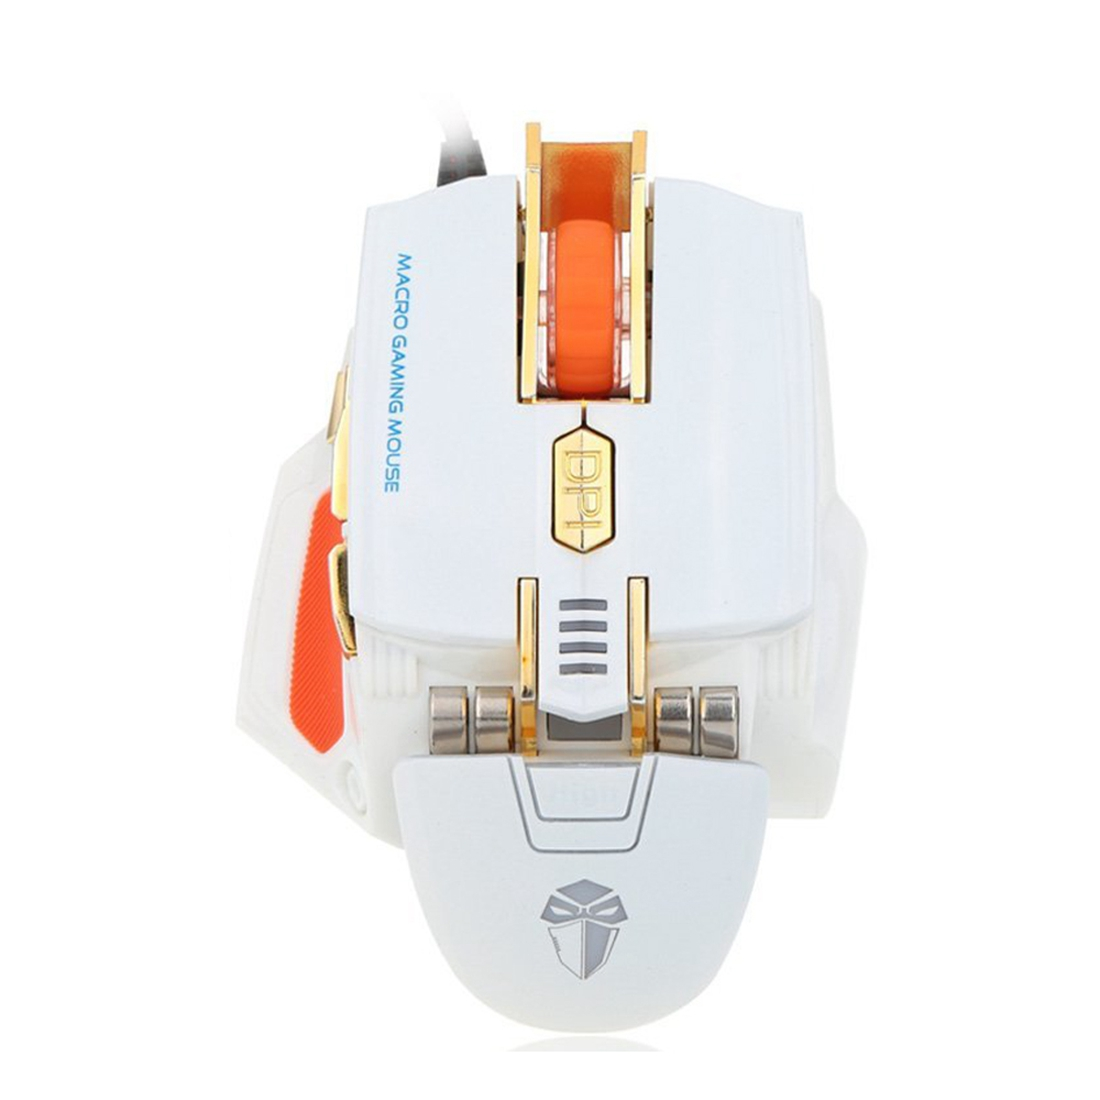 LUOM Mouse Gaming Optical Gaming Mouse 4000dpi with wire 7 Keys to Macro Adjustable Registration for PC Computer white